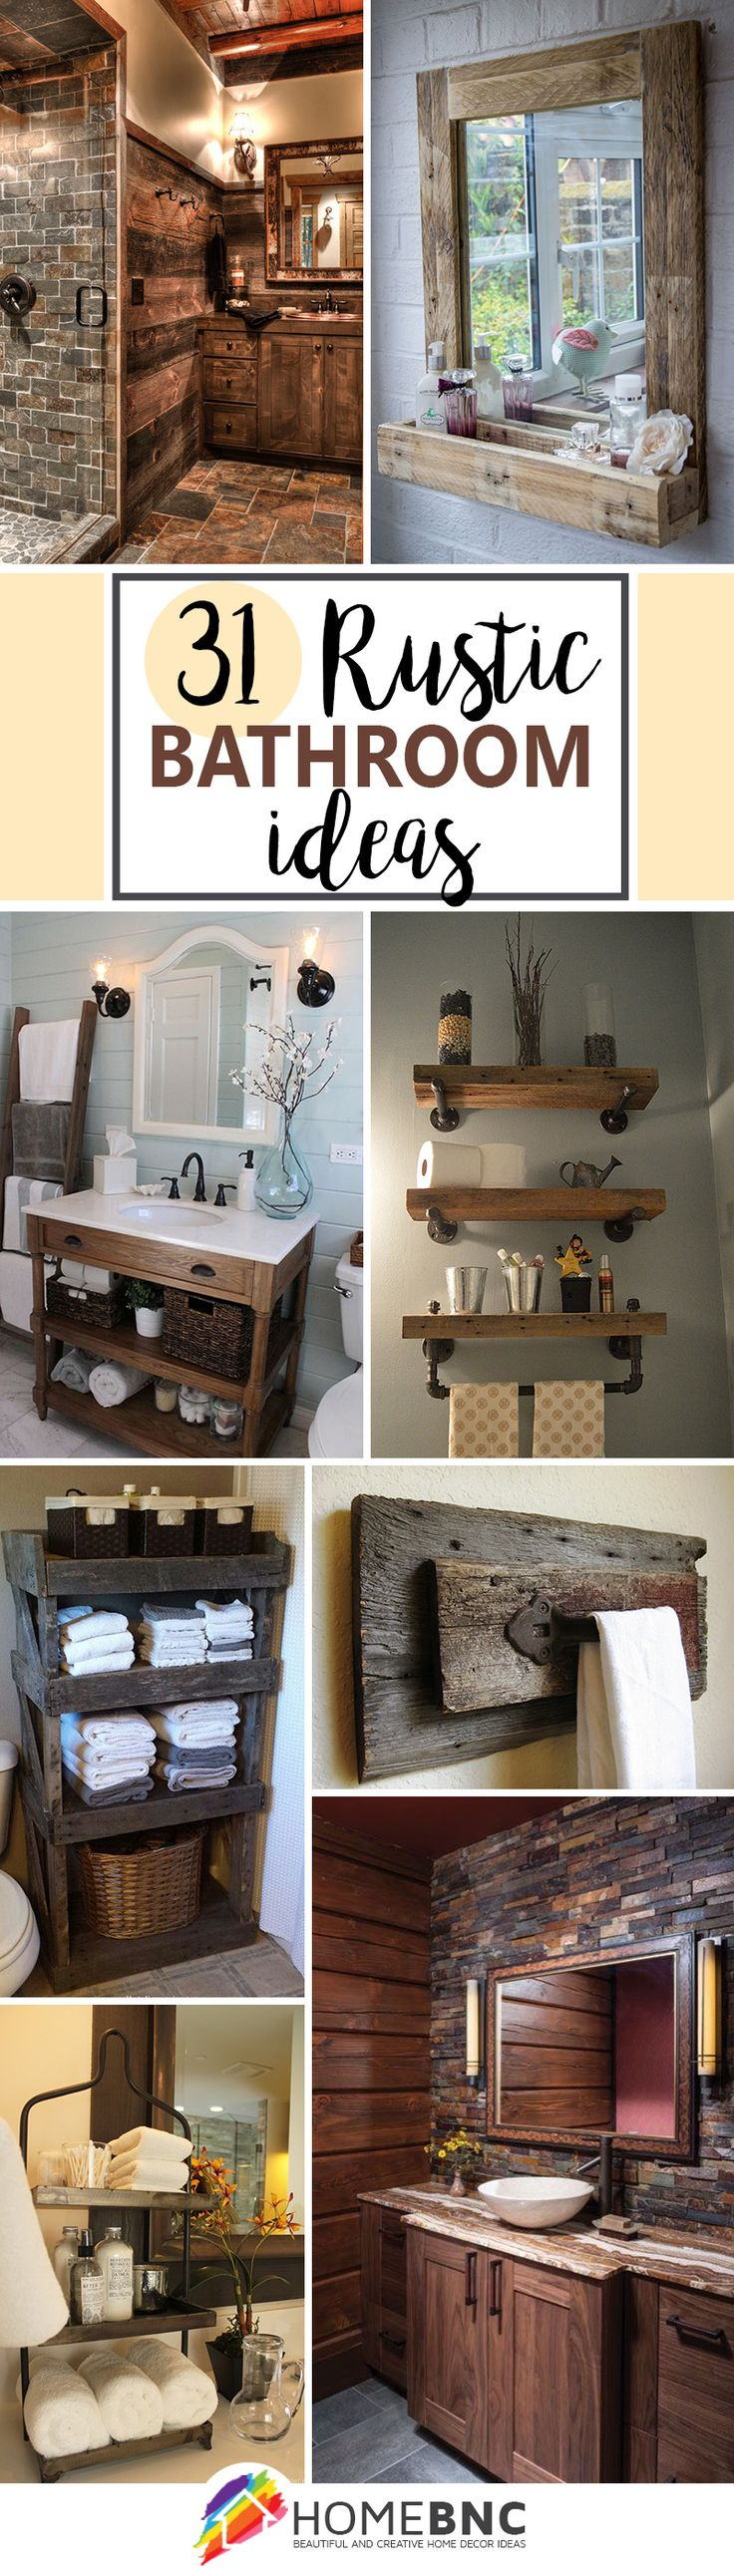 Best Rustic Bathrooms Ideas On Pinterest Rustic Bathroom - Small trailer with bathroom for bathroom decor ideas